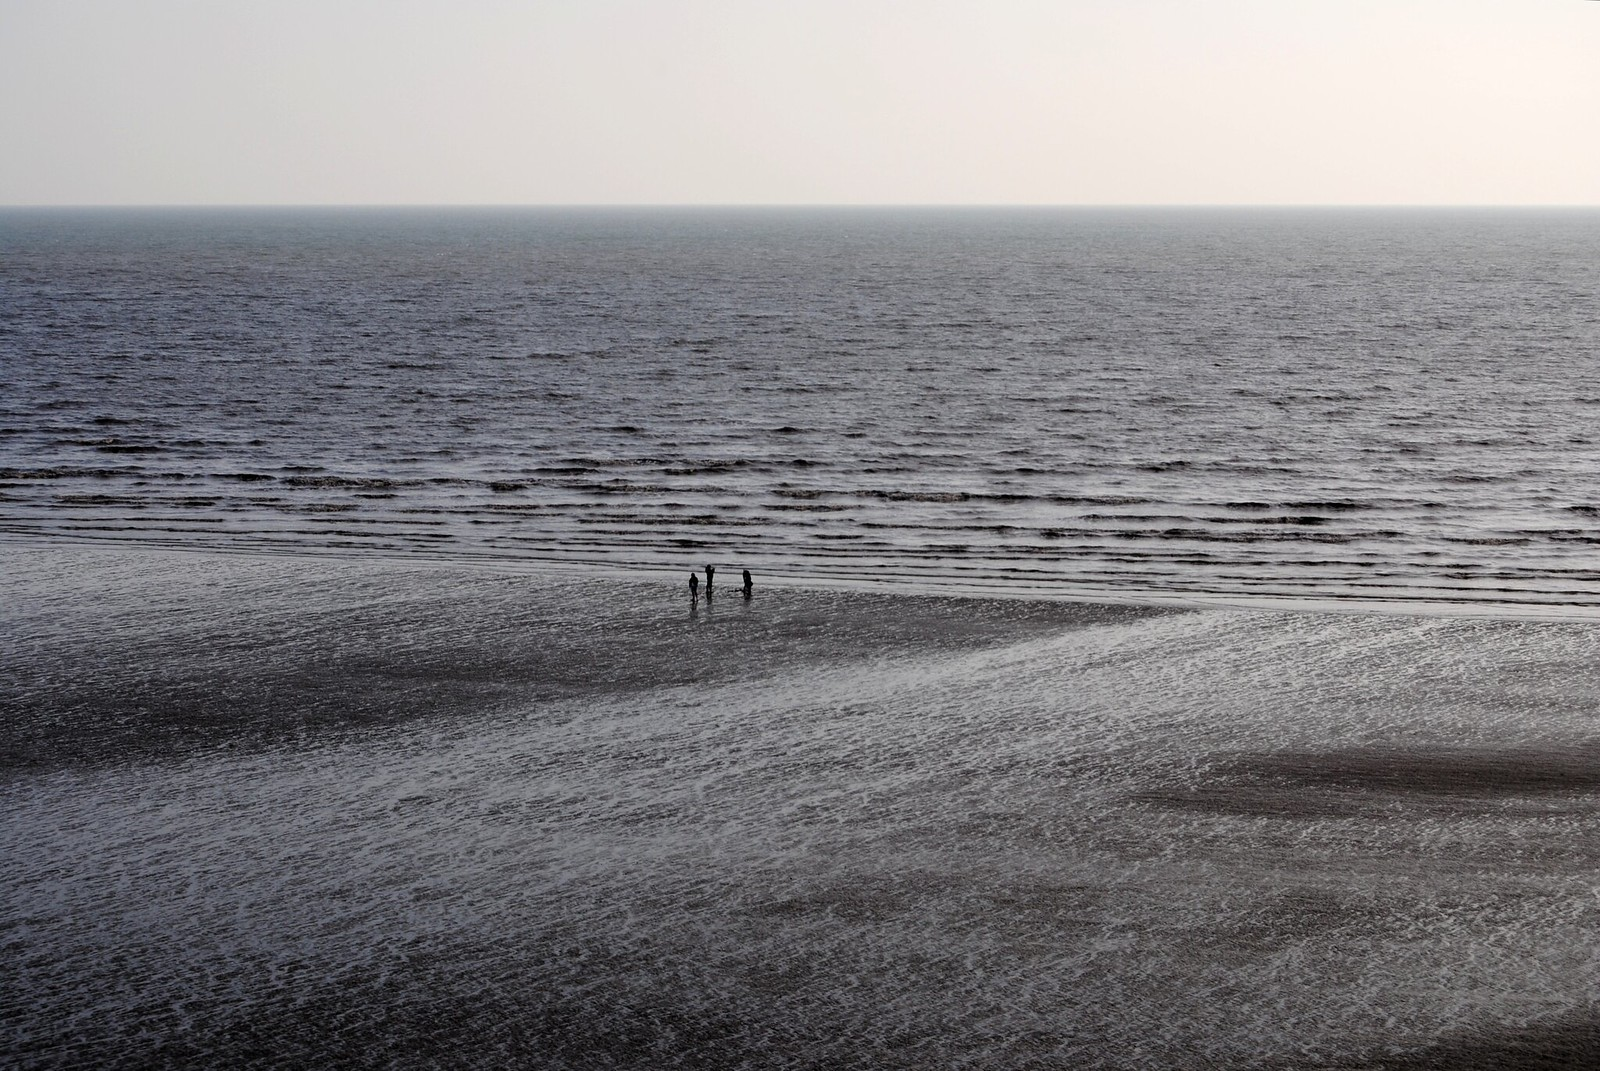 A view of the sea at Pendine Sands.